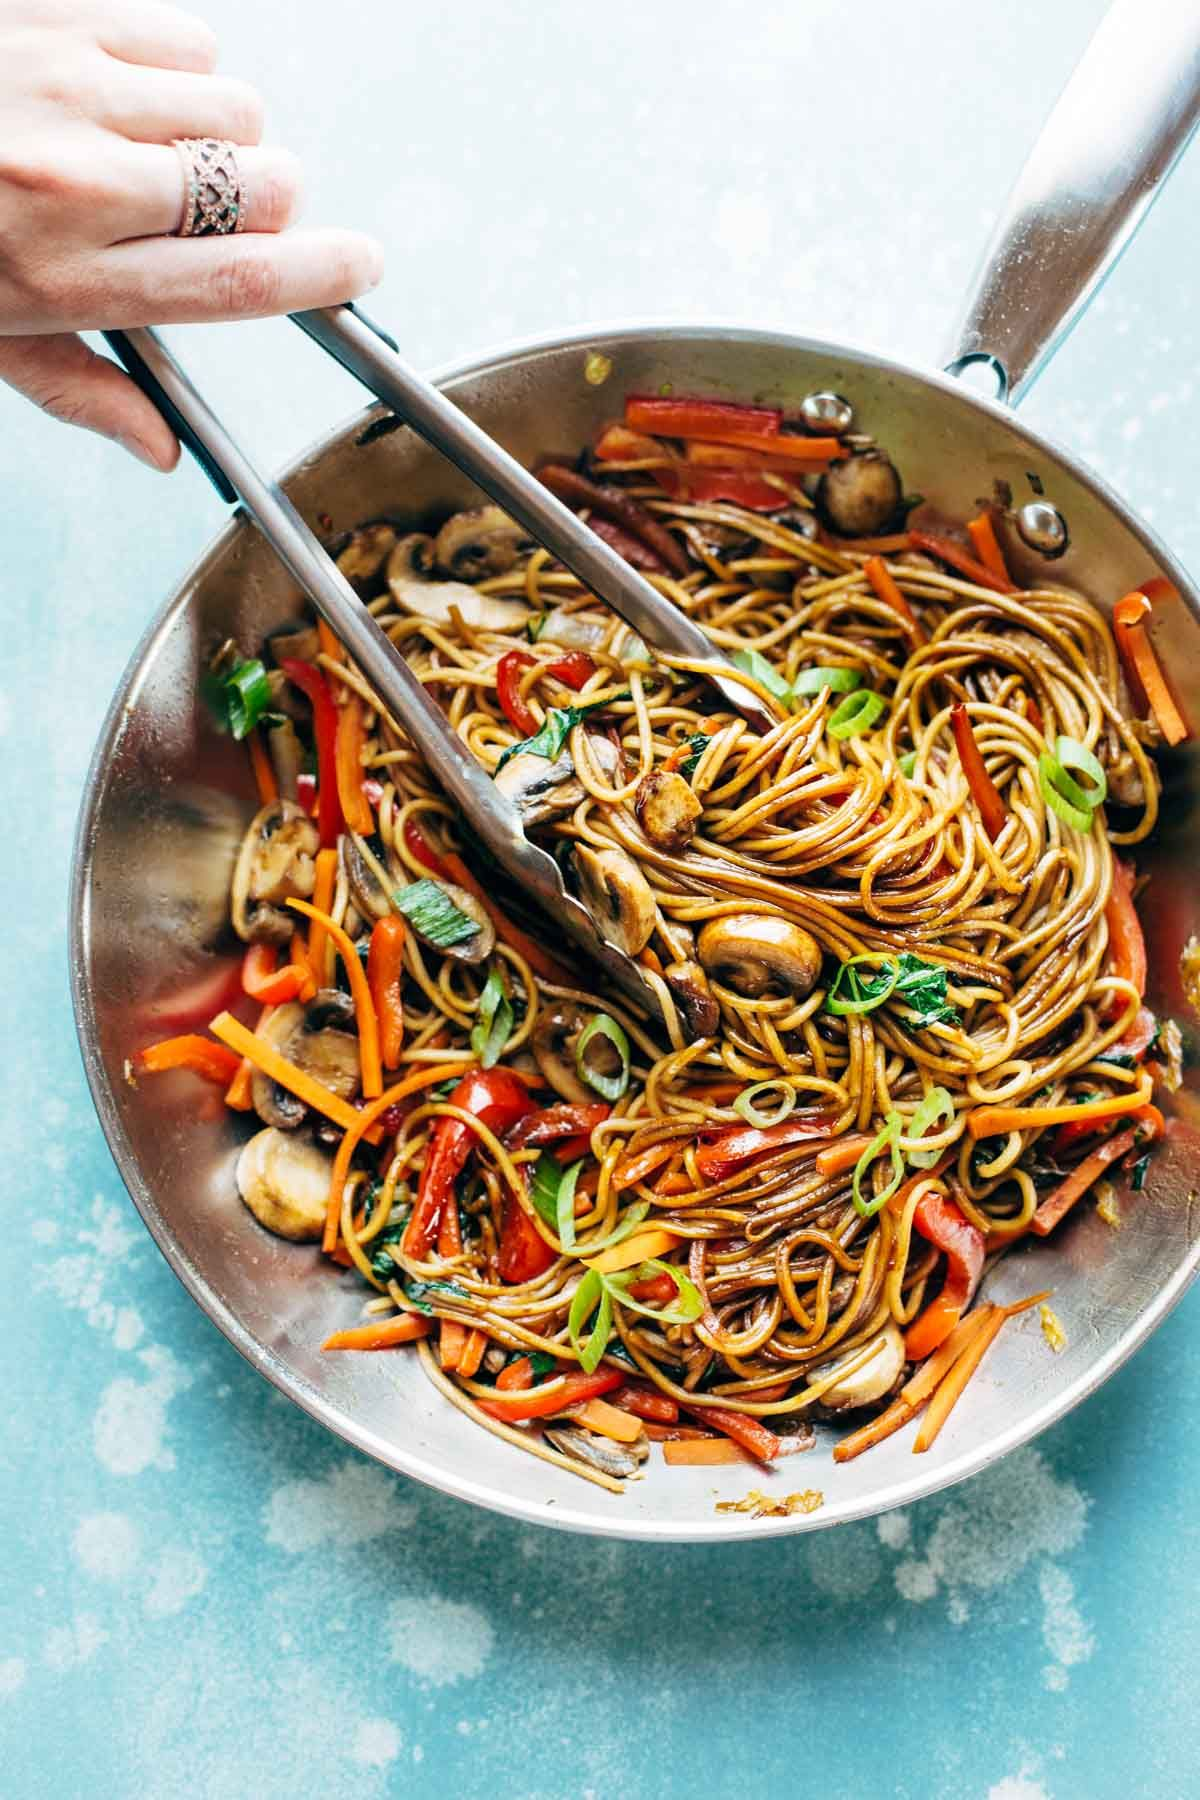 15 Minute Lo Mein 15 Minute Lo Mein! made with just soy sauce, sesame oil, a pinch of sugar, ramen noodles or spaghetti noodles, and any veggies or protein you like. SO YUMMY! |